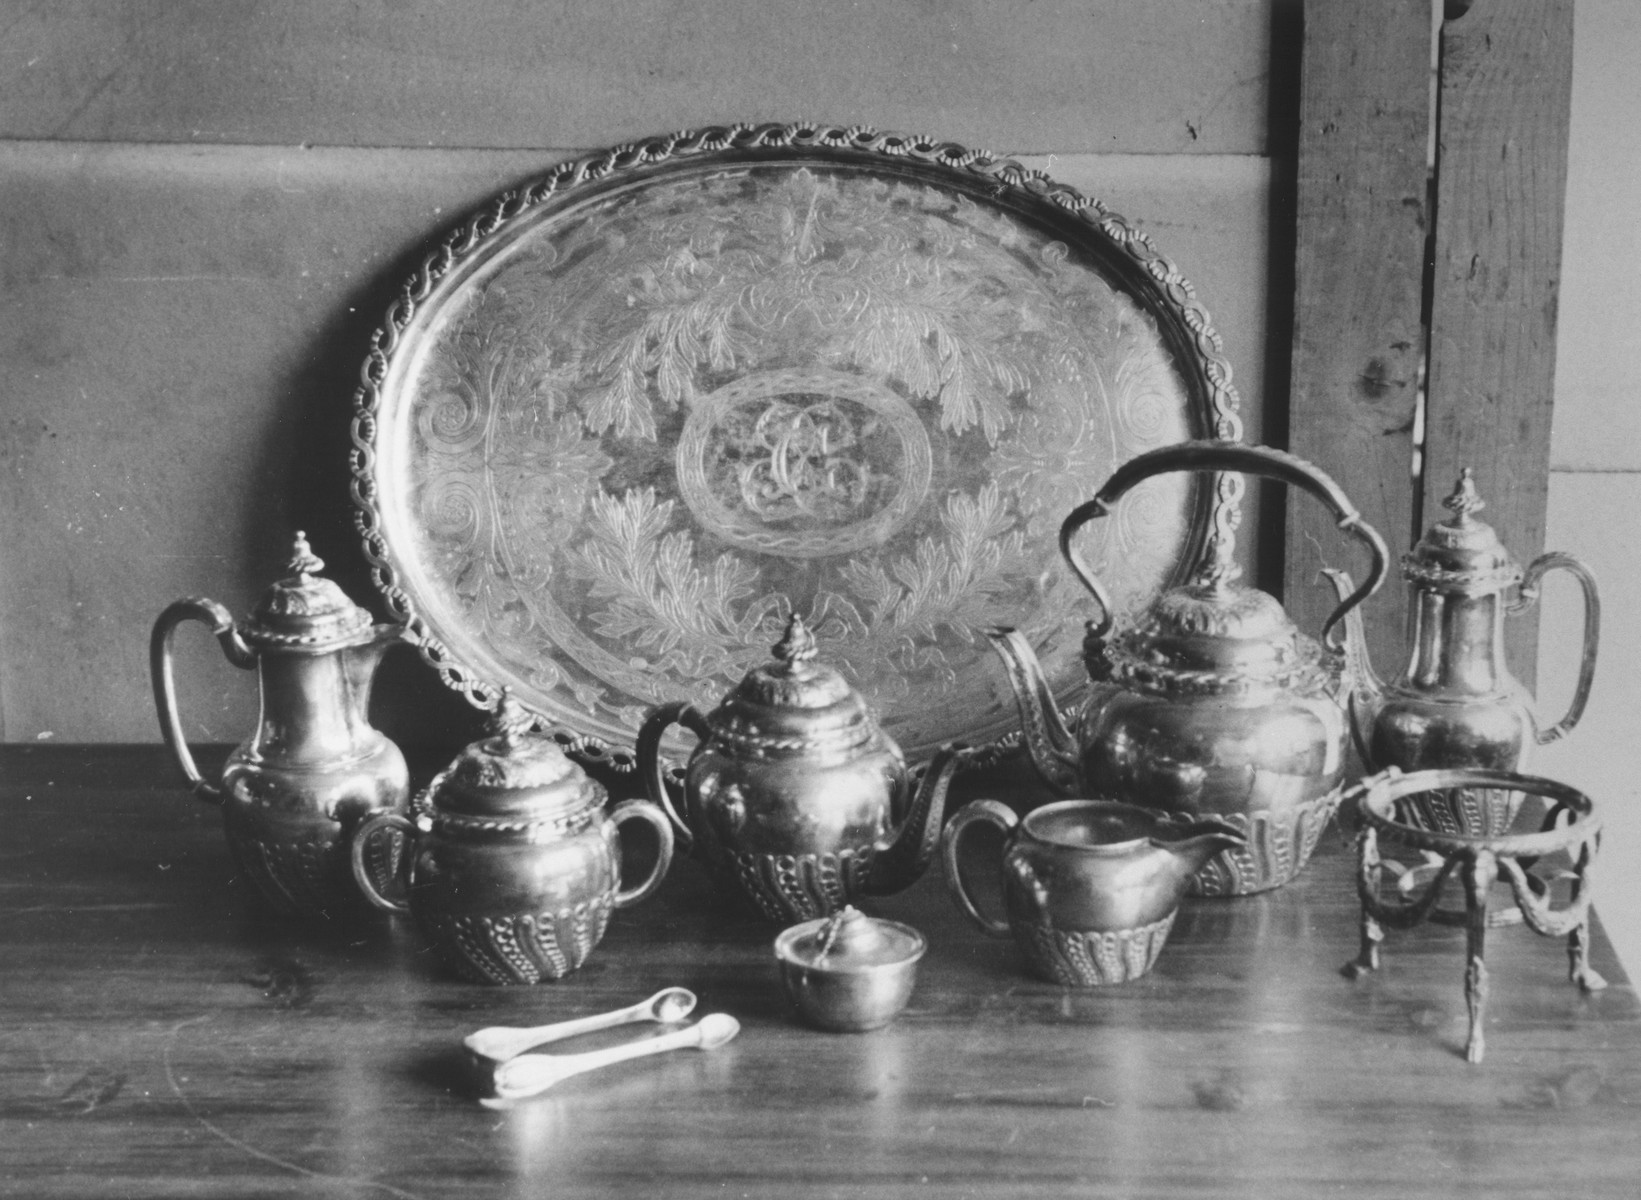 Display of a silver coffee set, confiscated from a Jewish household.